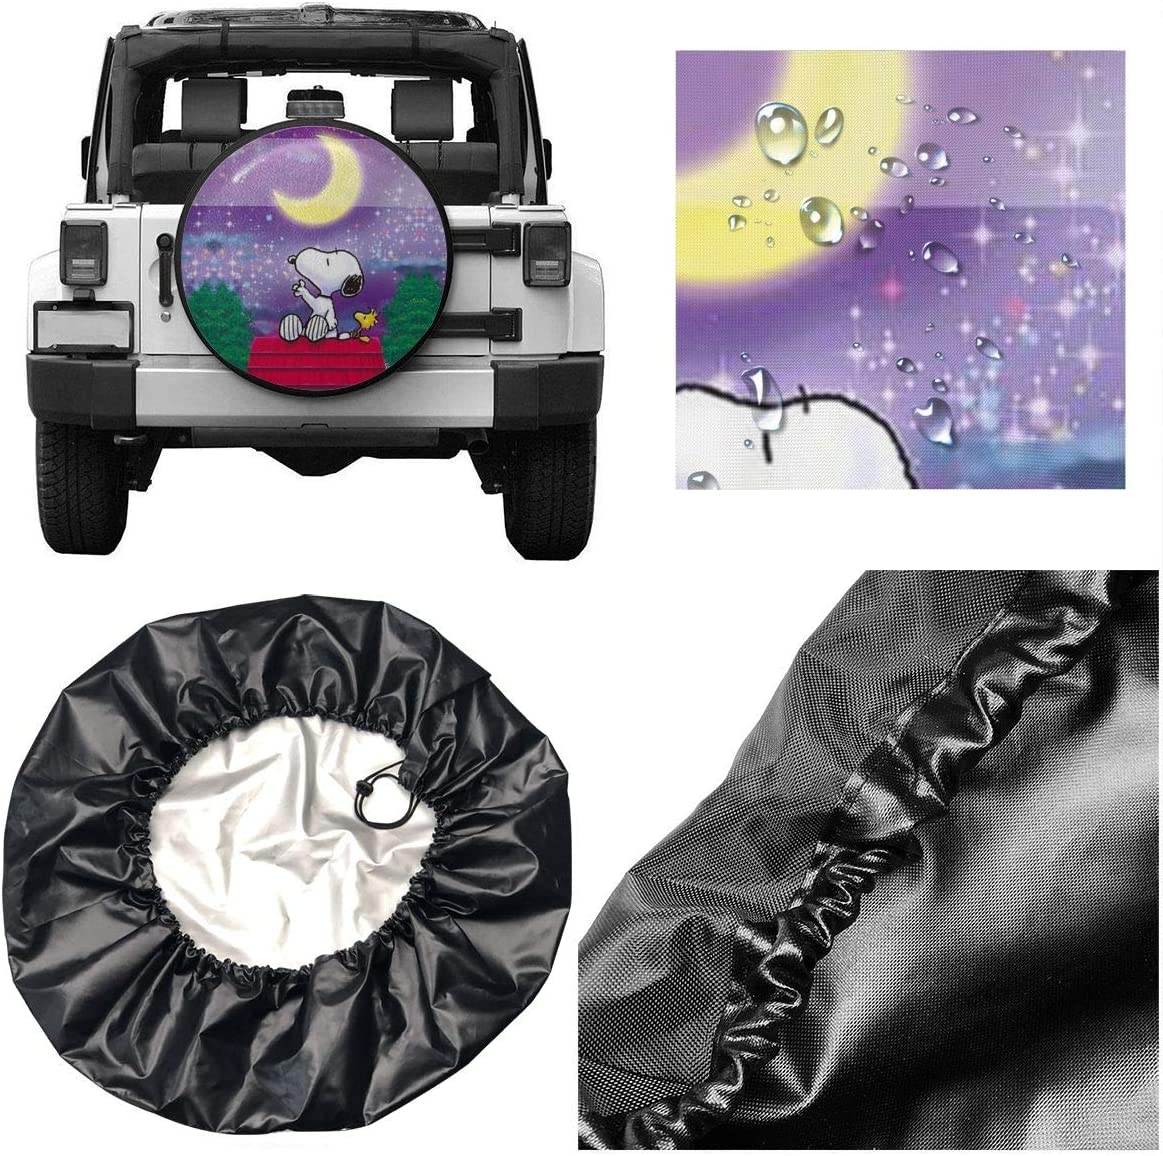 Universal Polyester Waterproof Dustproof Wheel Cover for RV SUV Camper Travel Fantastic Snoopy Spare Tire Cover 14 inch